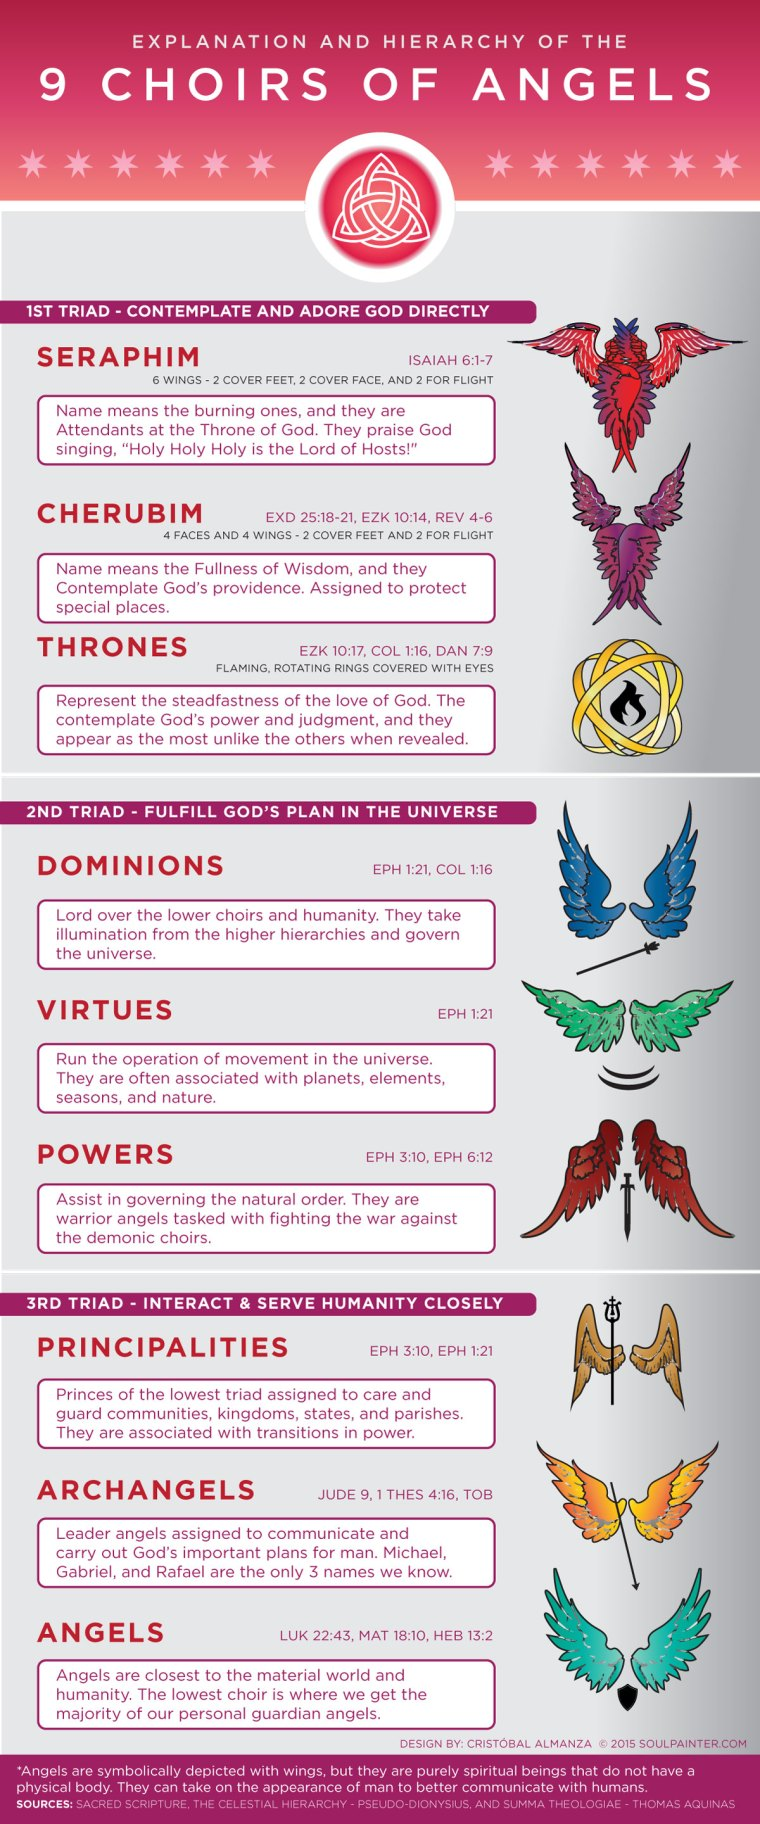 9ChoirsofAngels-Infographic